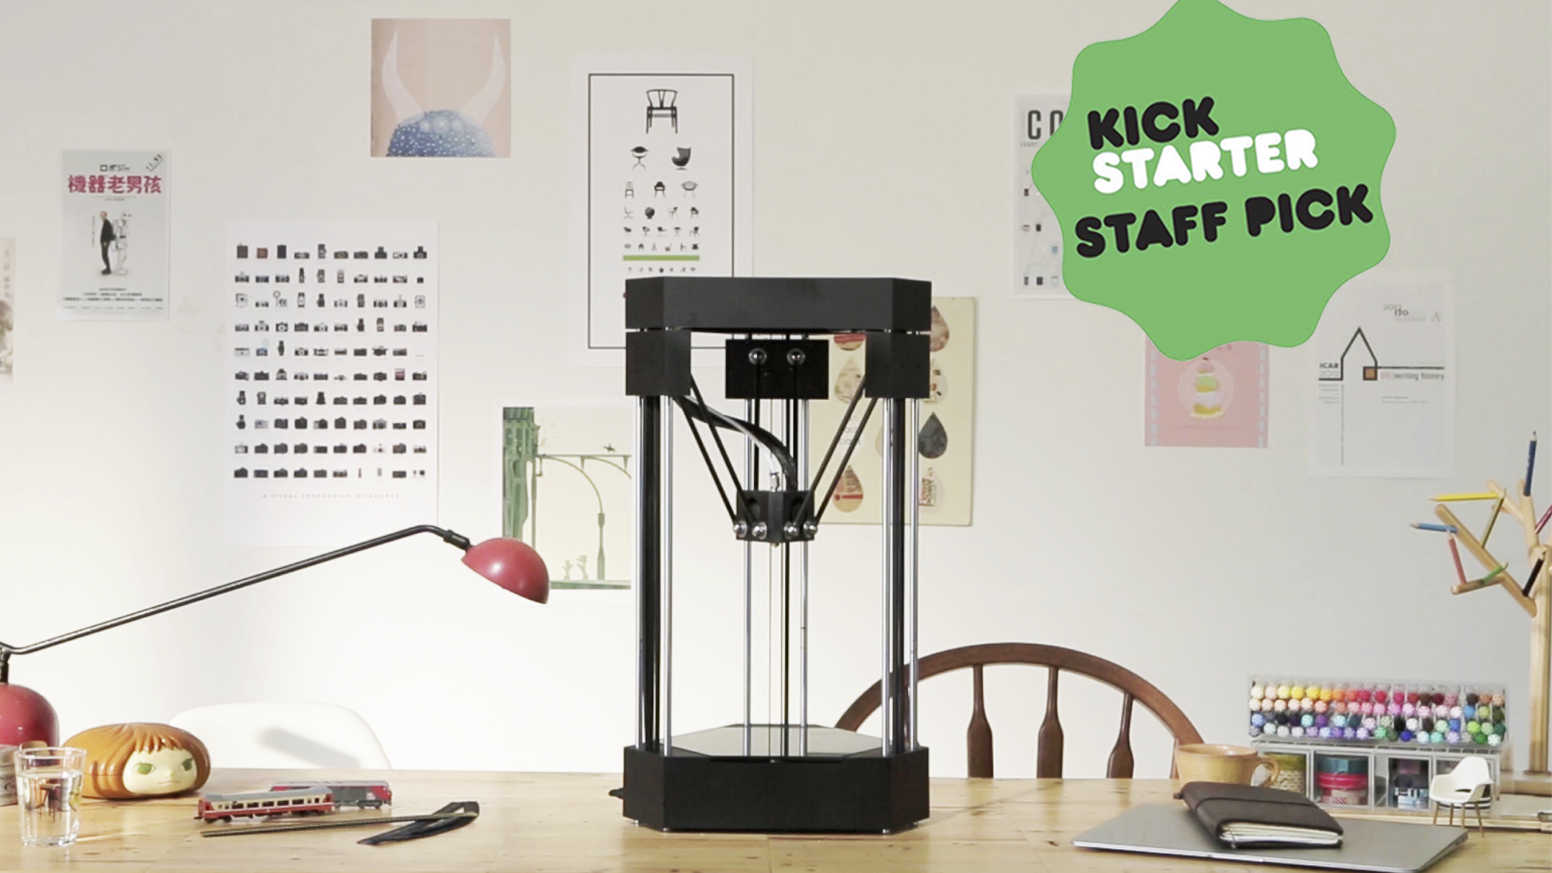 Bring your imagination to life with FLUX Delta's 3D printing, 3D scanning, laser engraving and more modular functions.